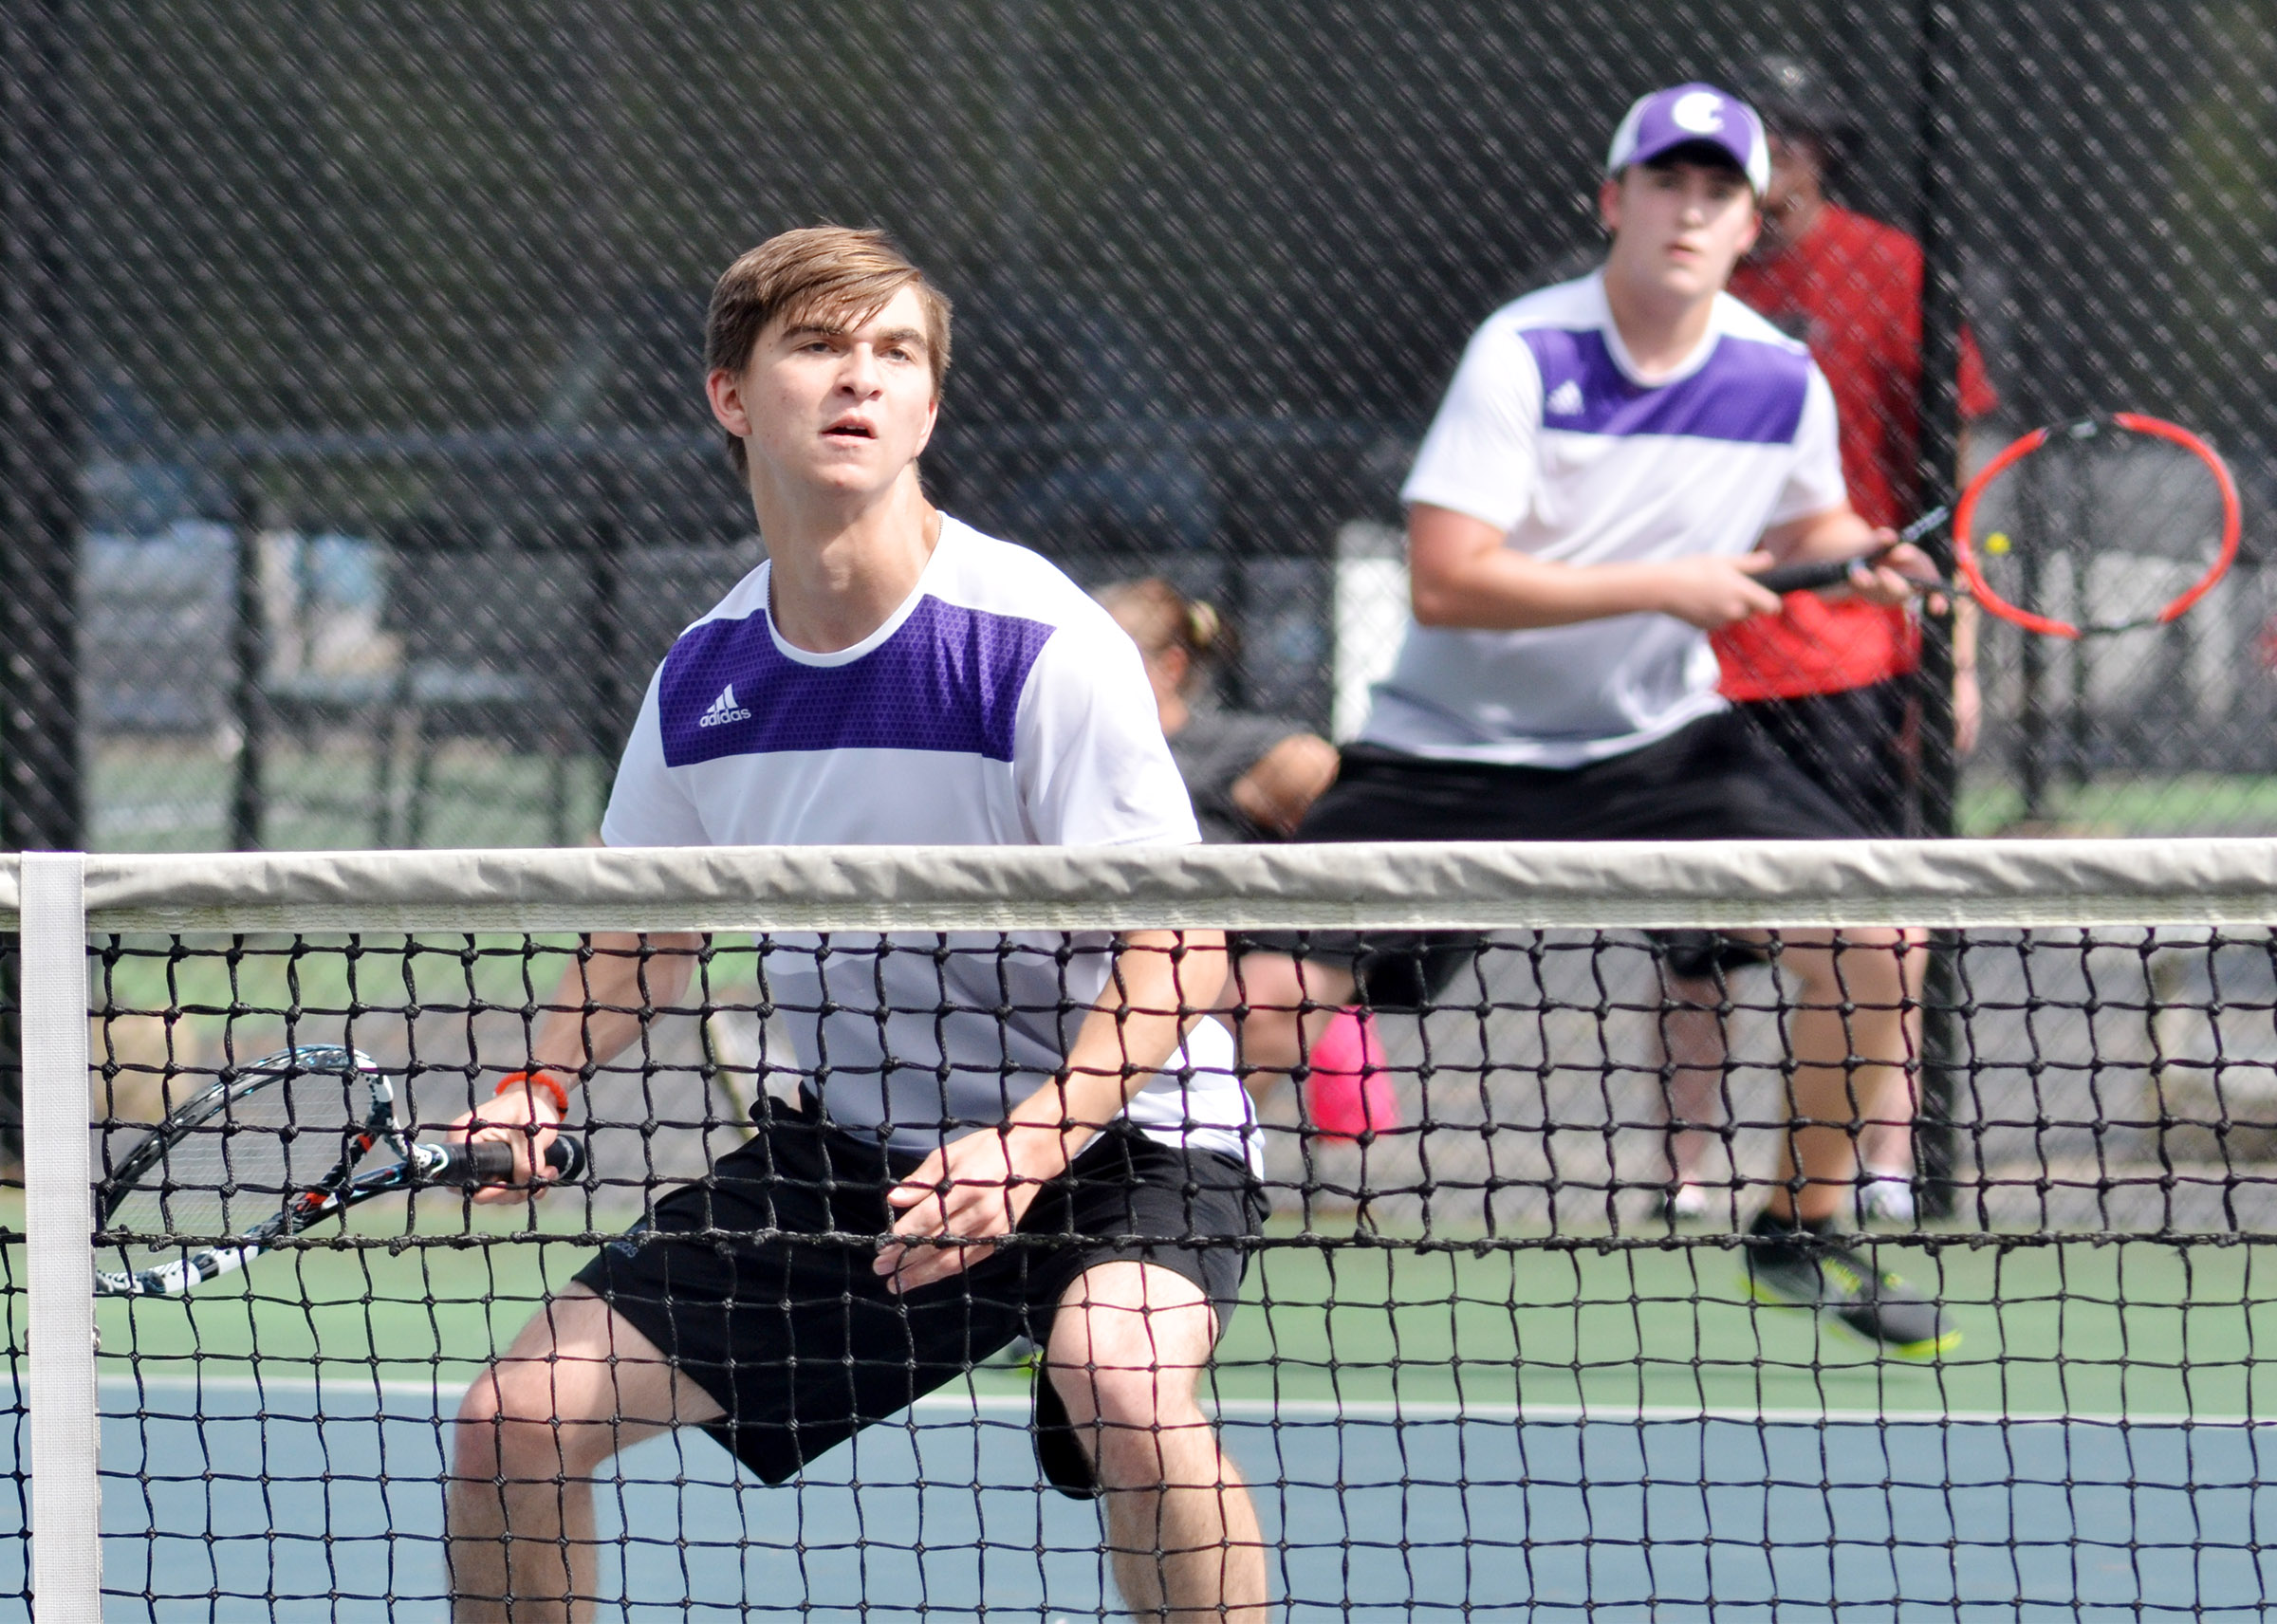 CHS doubles partners Cass Kidwell, a junior, in front, and senior Zack Settle keep their eyes on the ball.